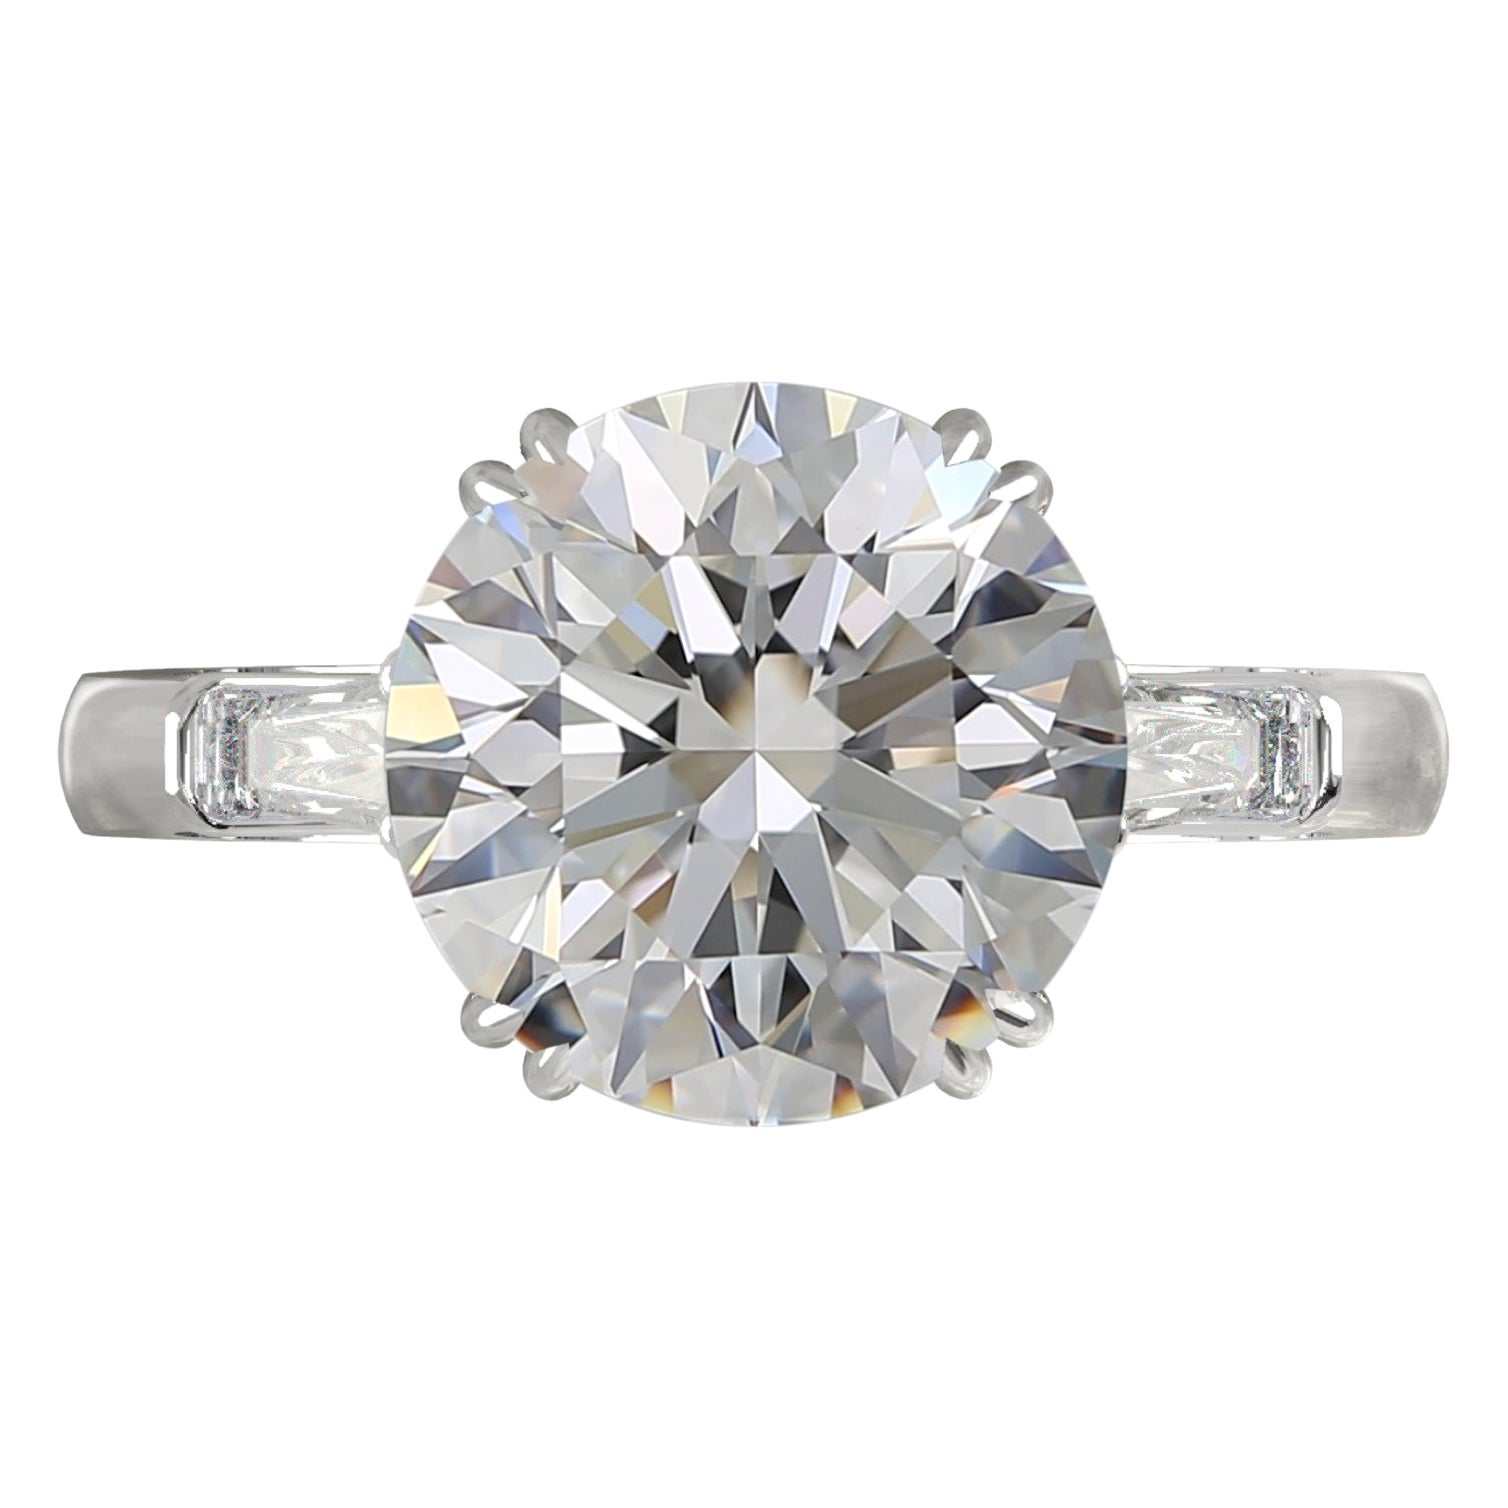 GIA Certified 5 Carat Round Brilliant Cut Diamond Ring Triple Excellent Cut